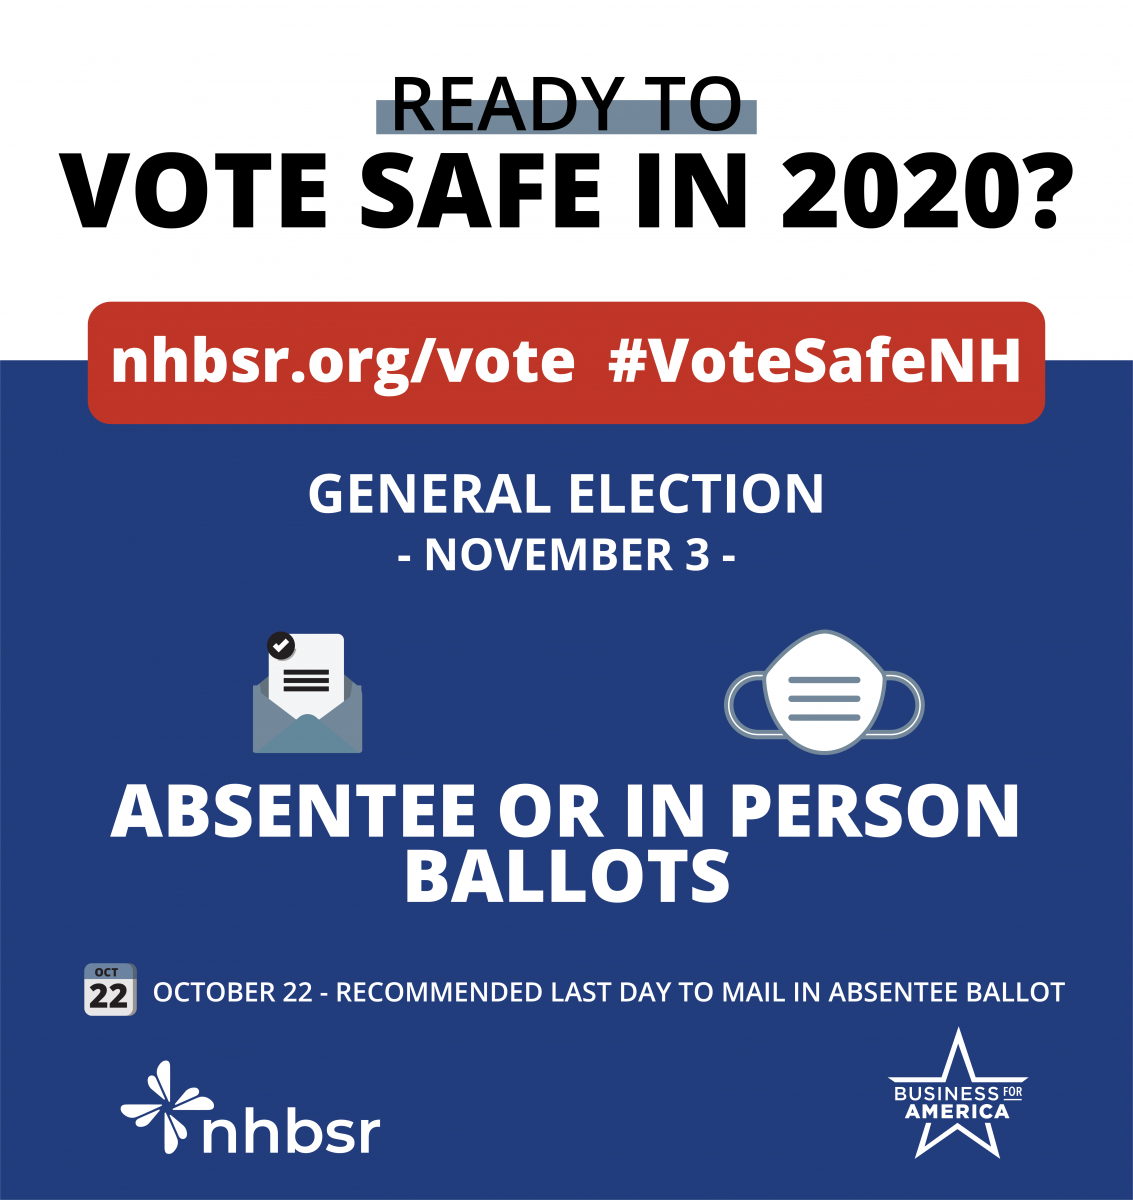 vsnh_general_ellection_reminder-01.png